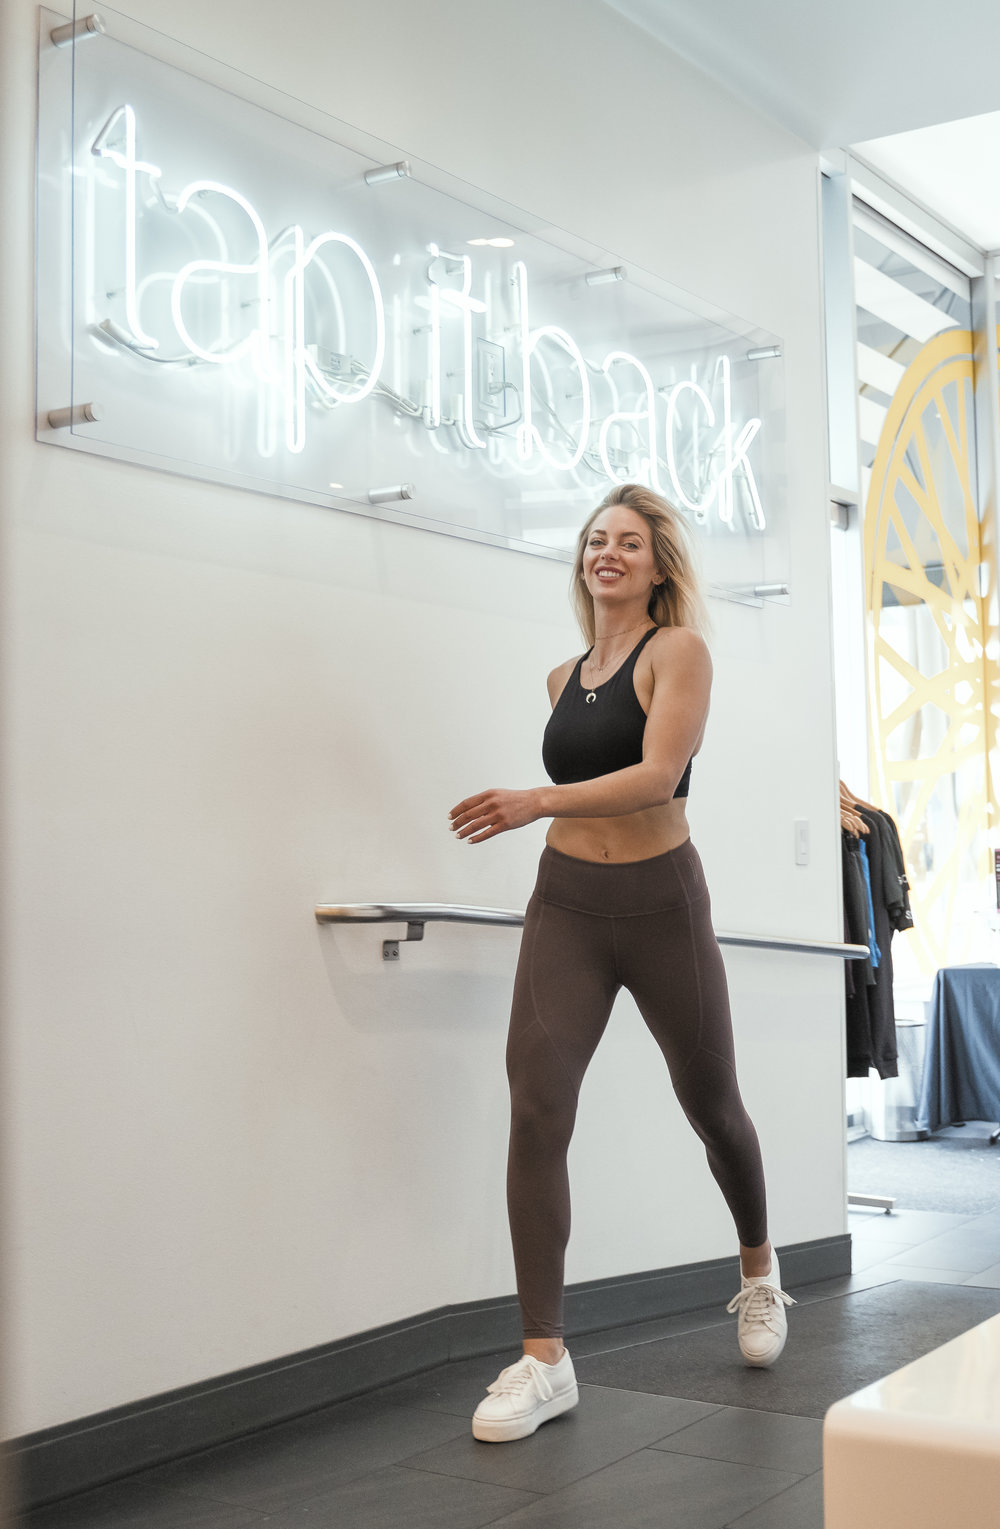 soulcycle lululemon shopstyle collection collaboration